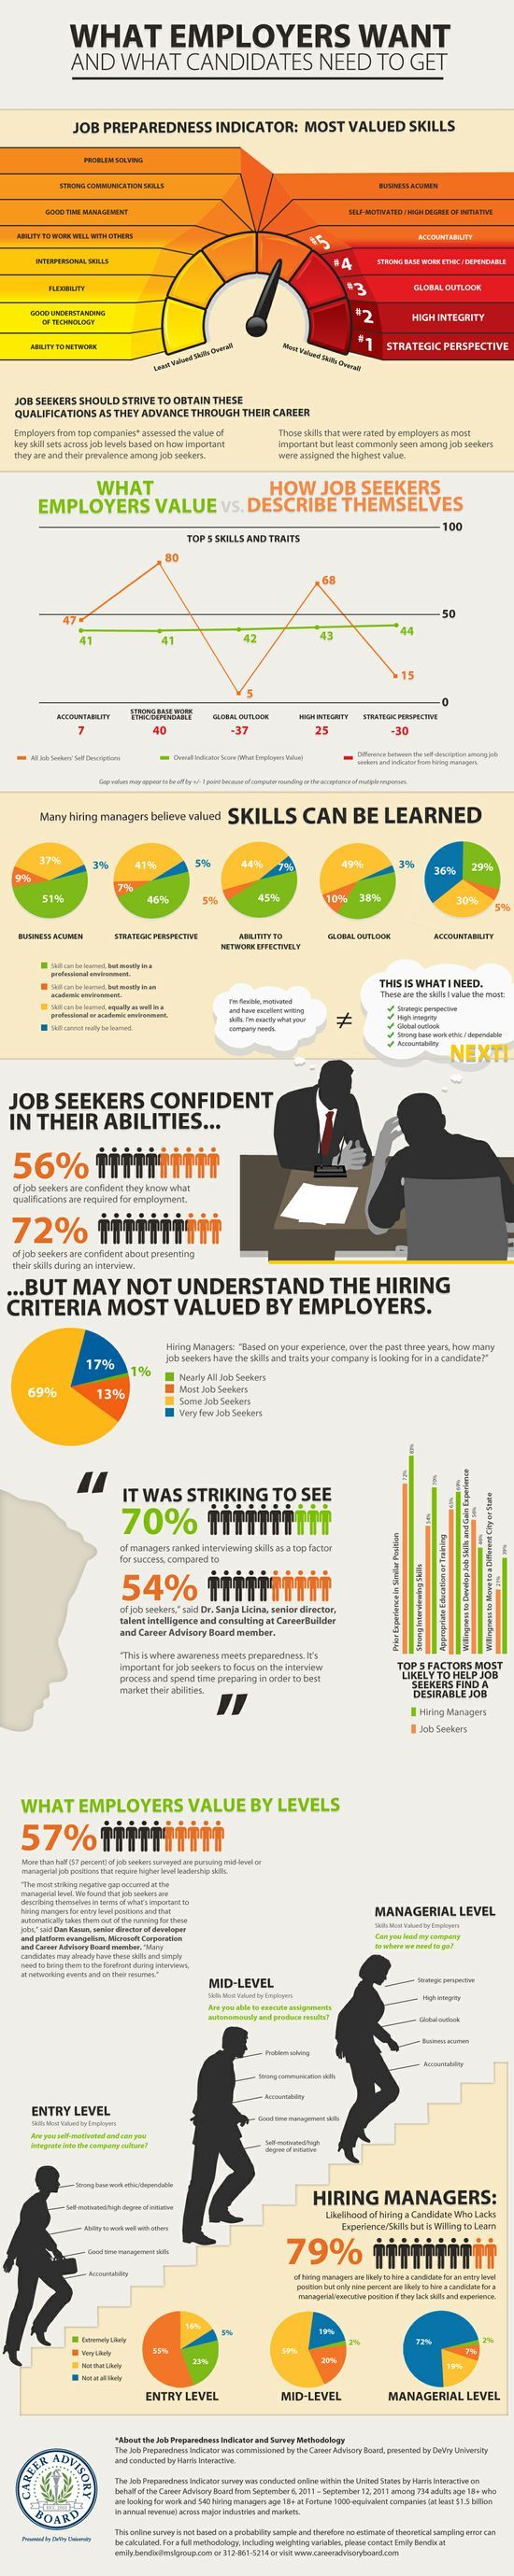 What Employers Want and What Candidates Need to #softskills #soft skills #self personality